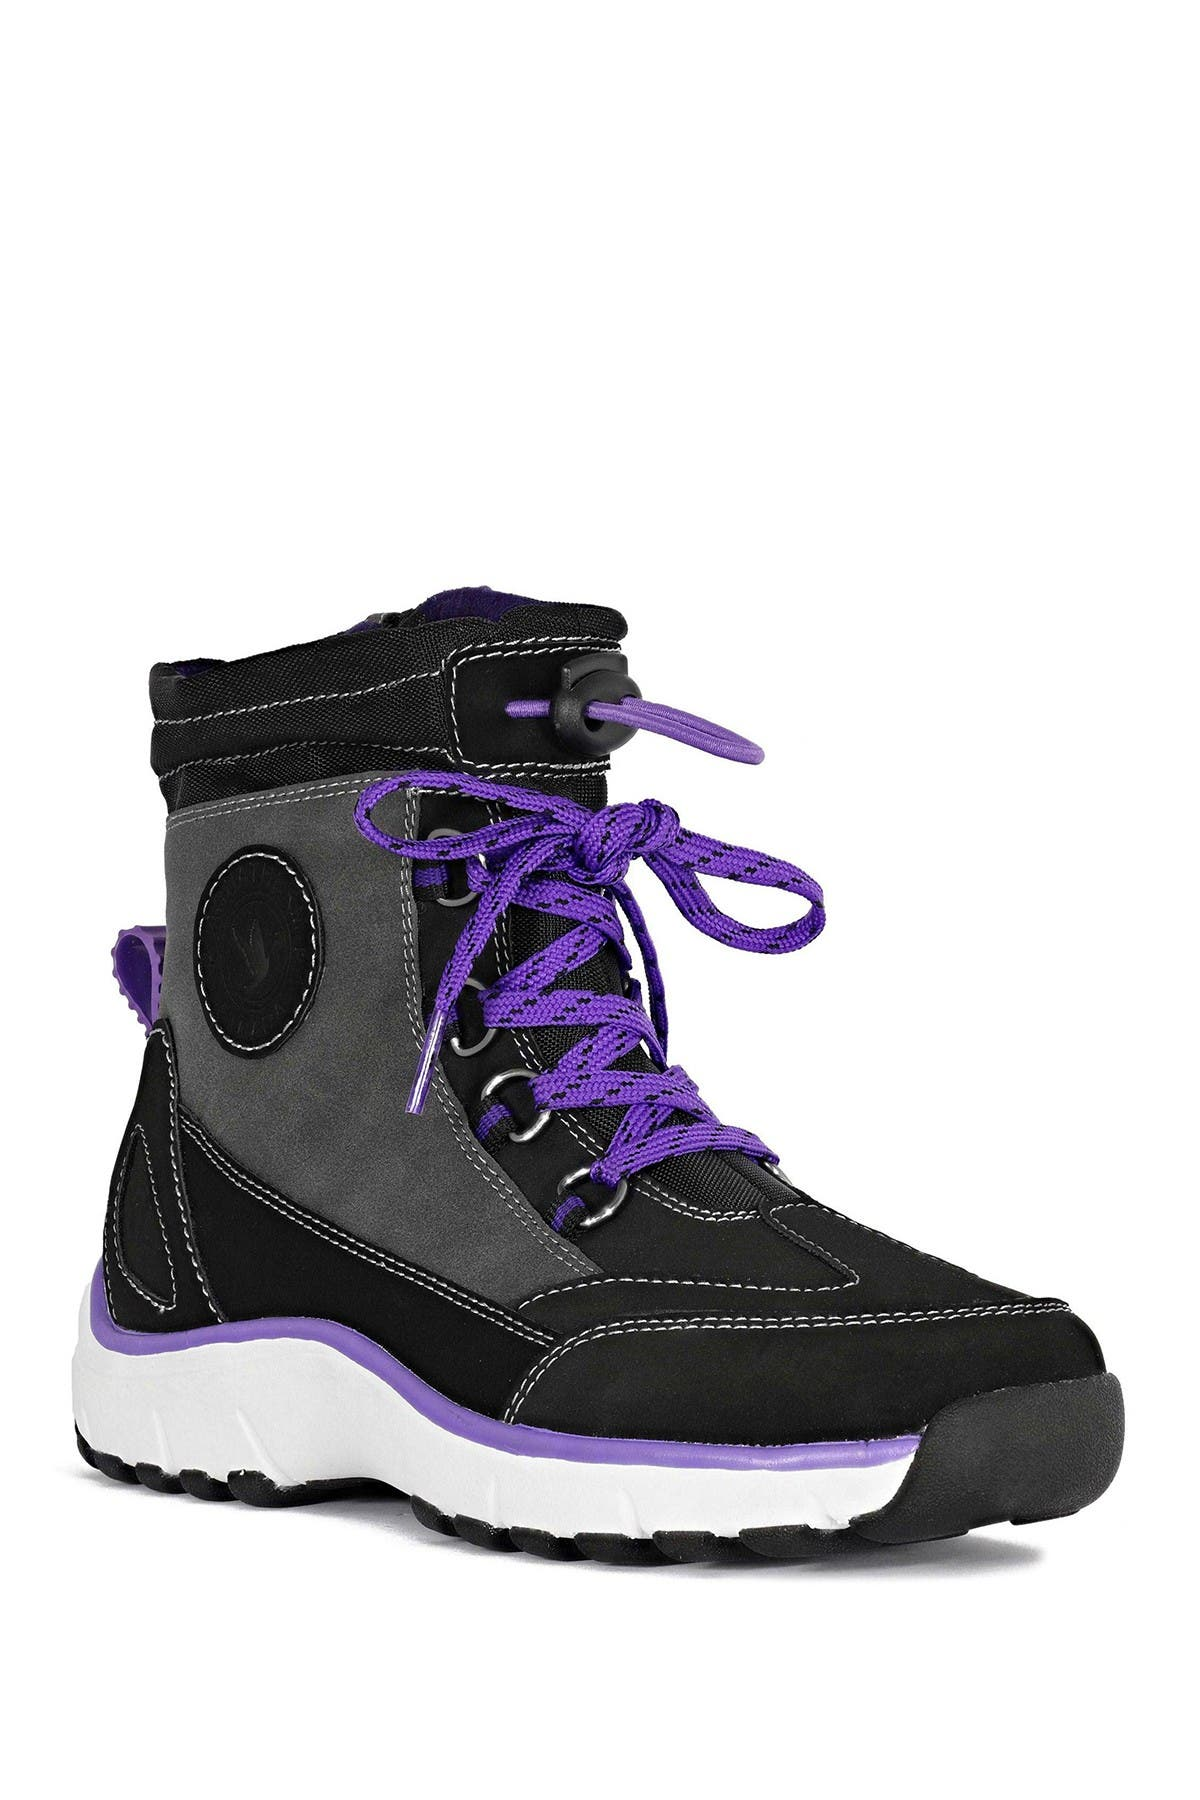 Image of Aquatherm by Santana Canada Boss Cold Weather Boot